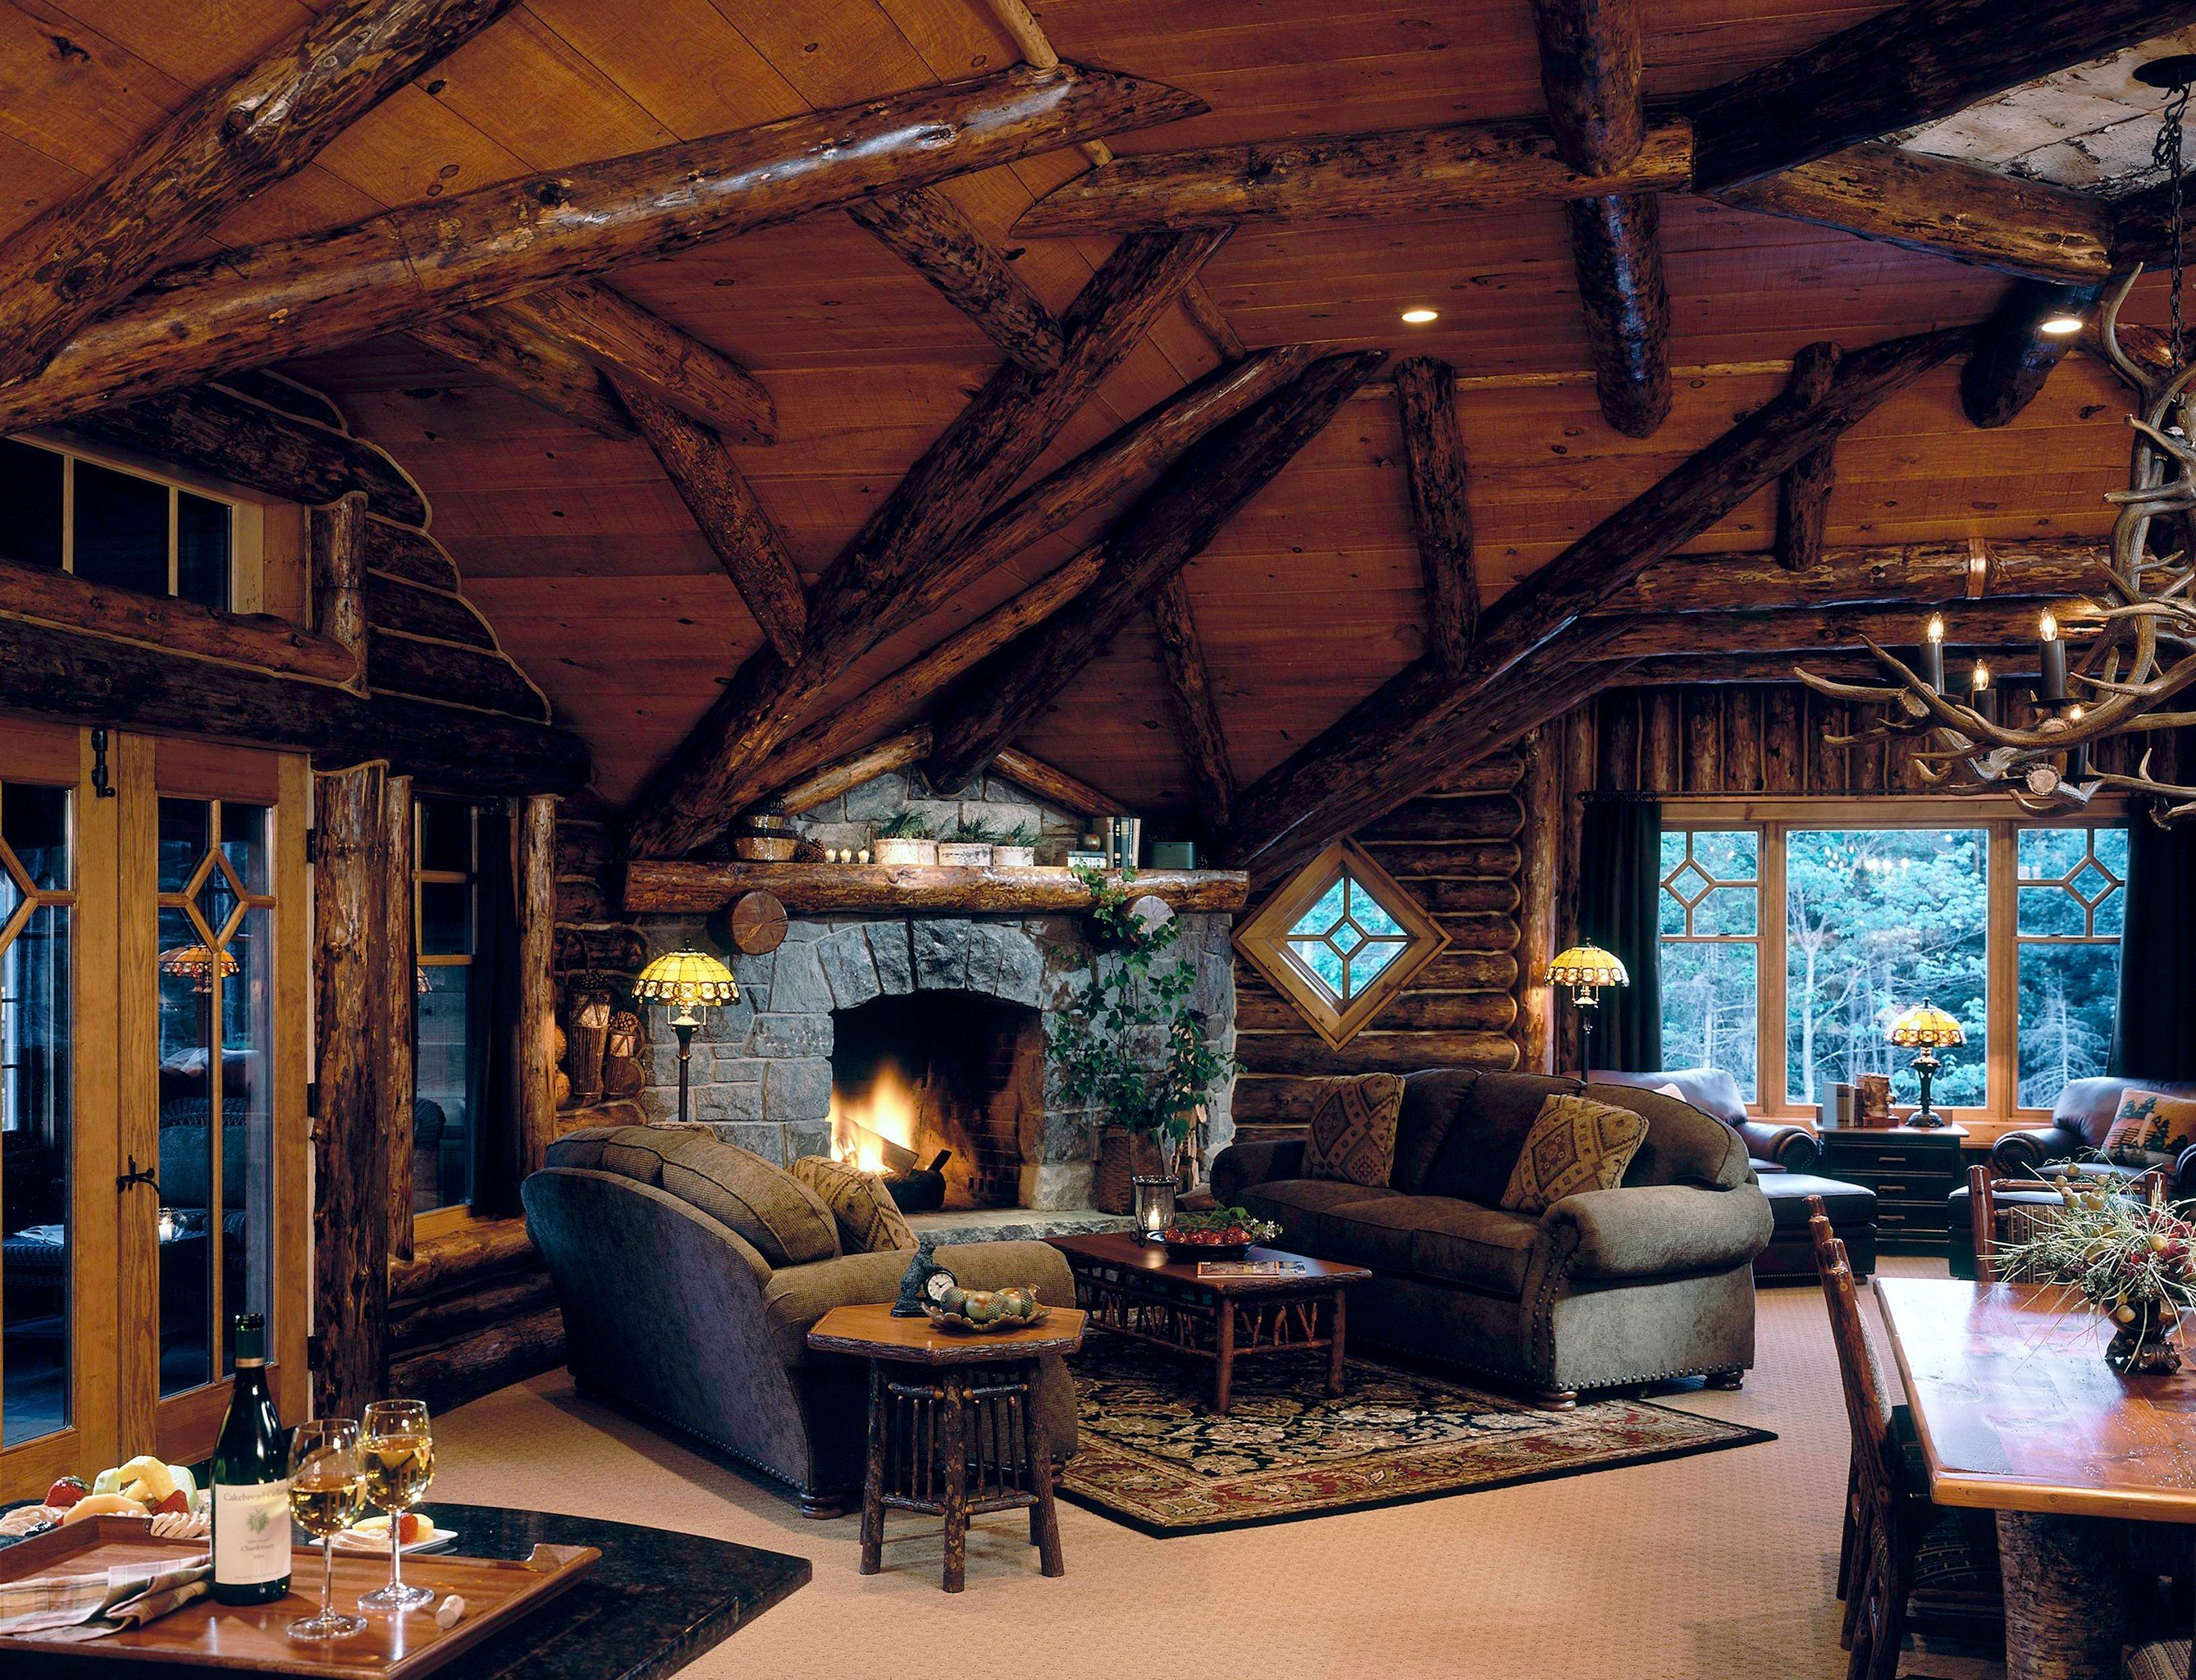 Hotels indoor ceiling room Living property building estate house living room log cabin home interior design cottage wood outdoor structure farmhouse furniture area